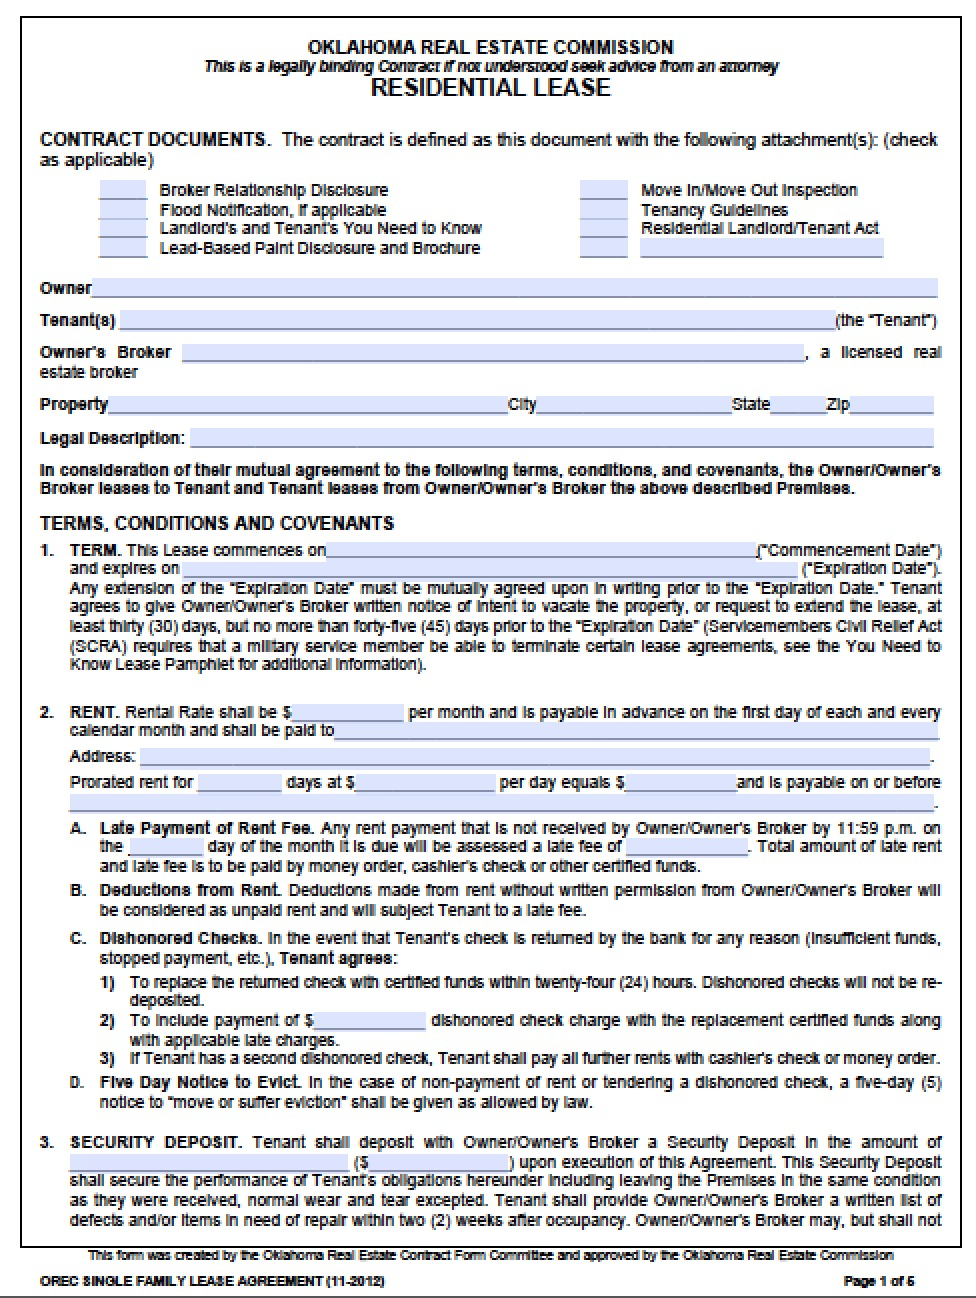 Contract Rental Agreement Template Free Oklahoma Standard One 1 Year Residential Lease Agreement